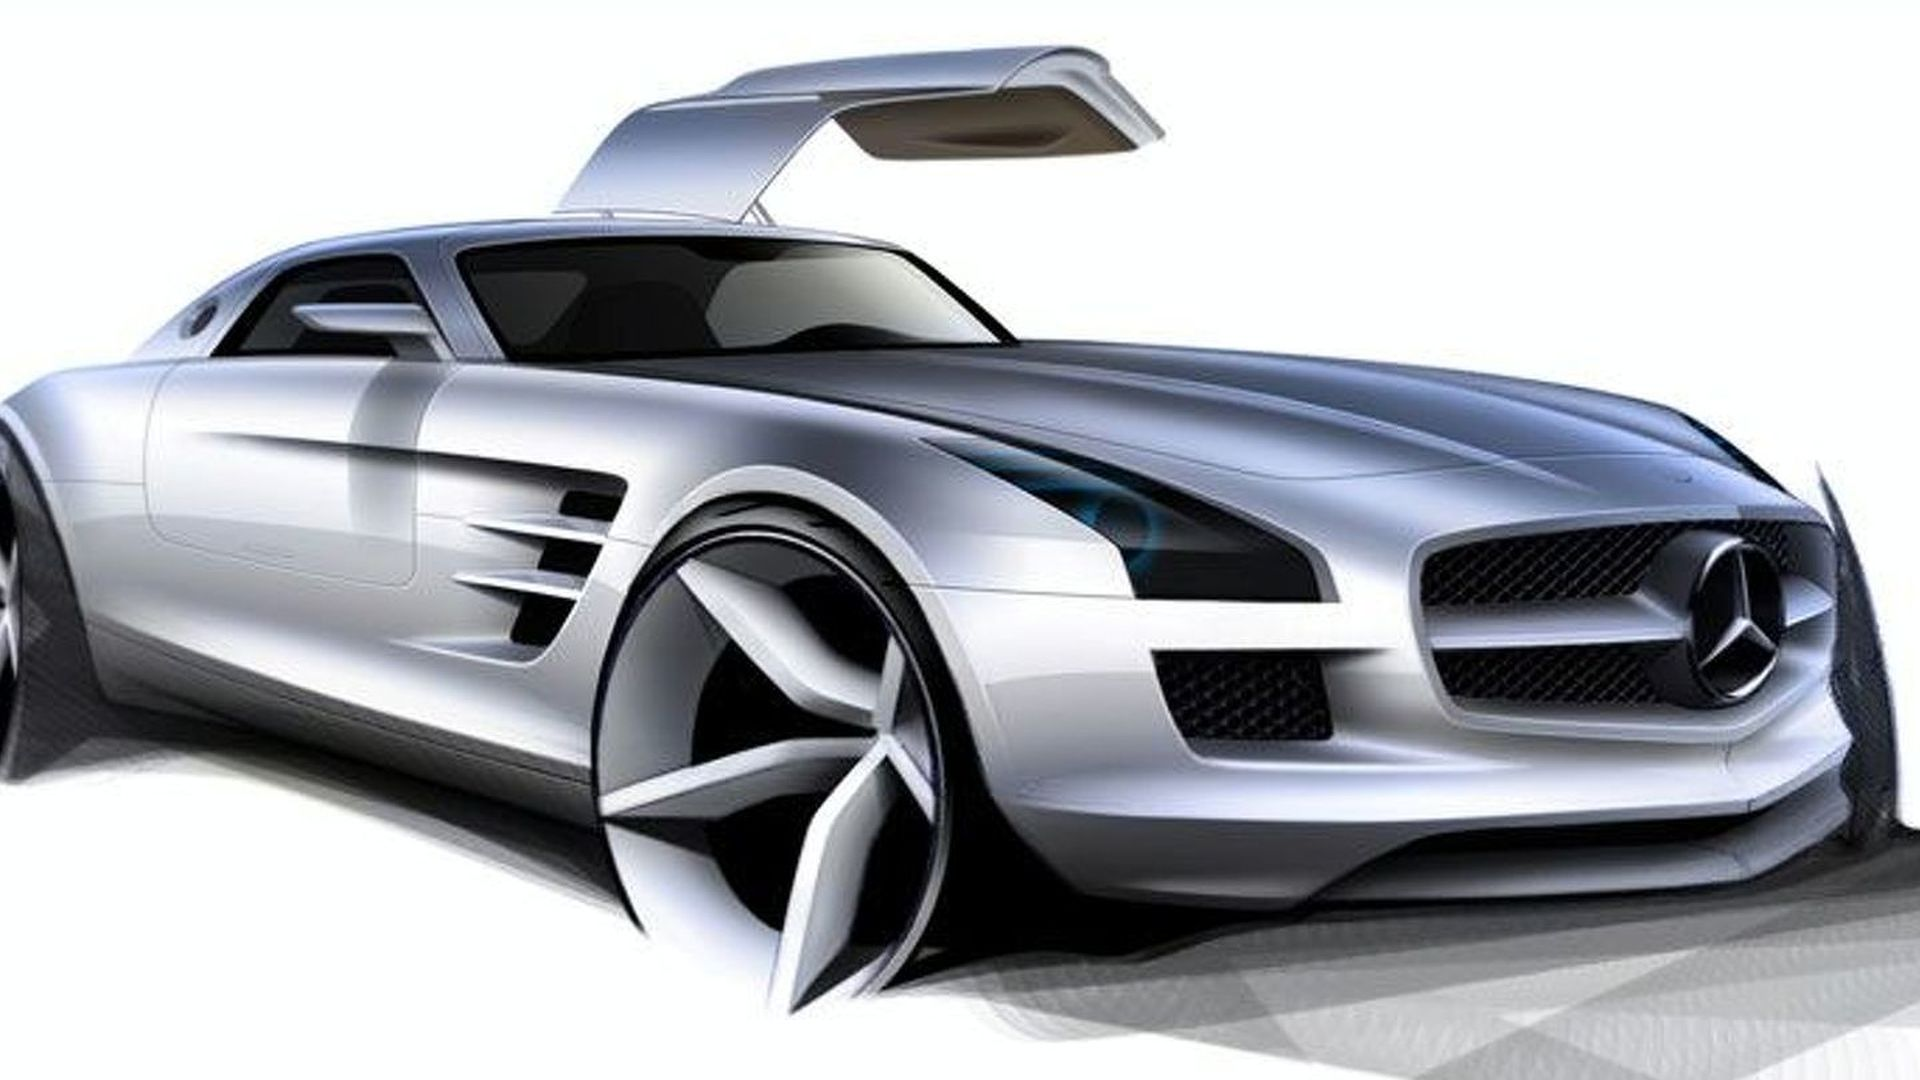 Mercedes SLS AMG Gullwing electric vehicle planned for 2015